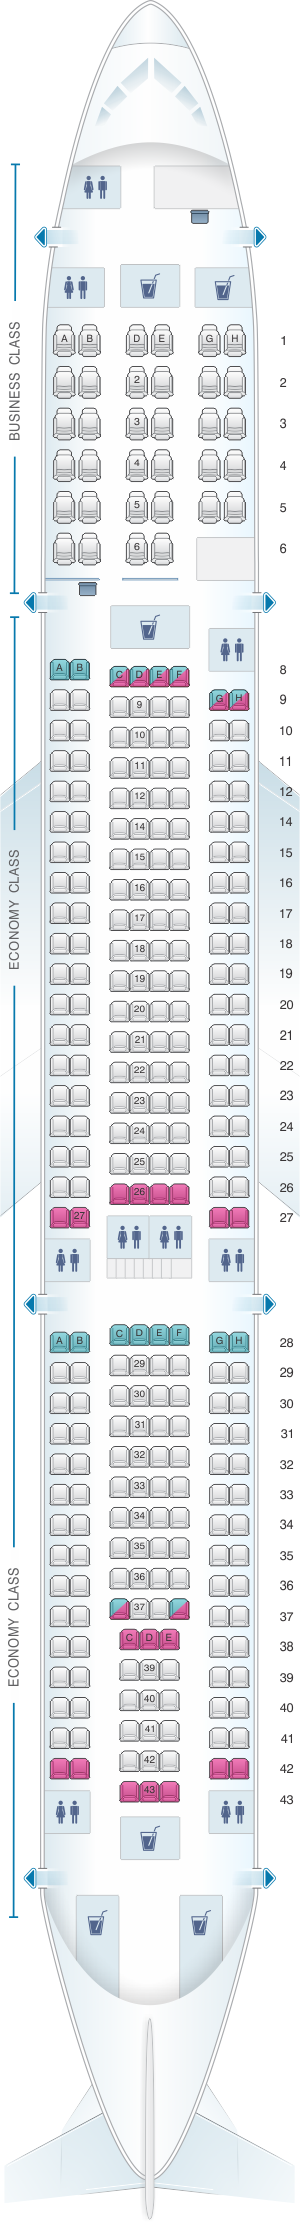 Seat map for Air Mauritius Airbus A340 300C